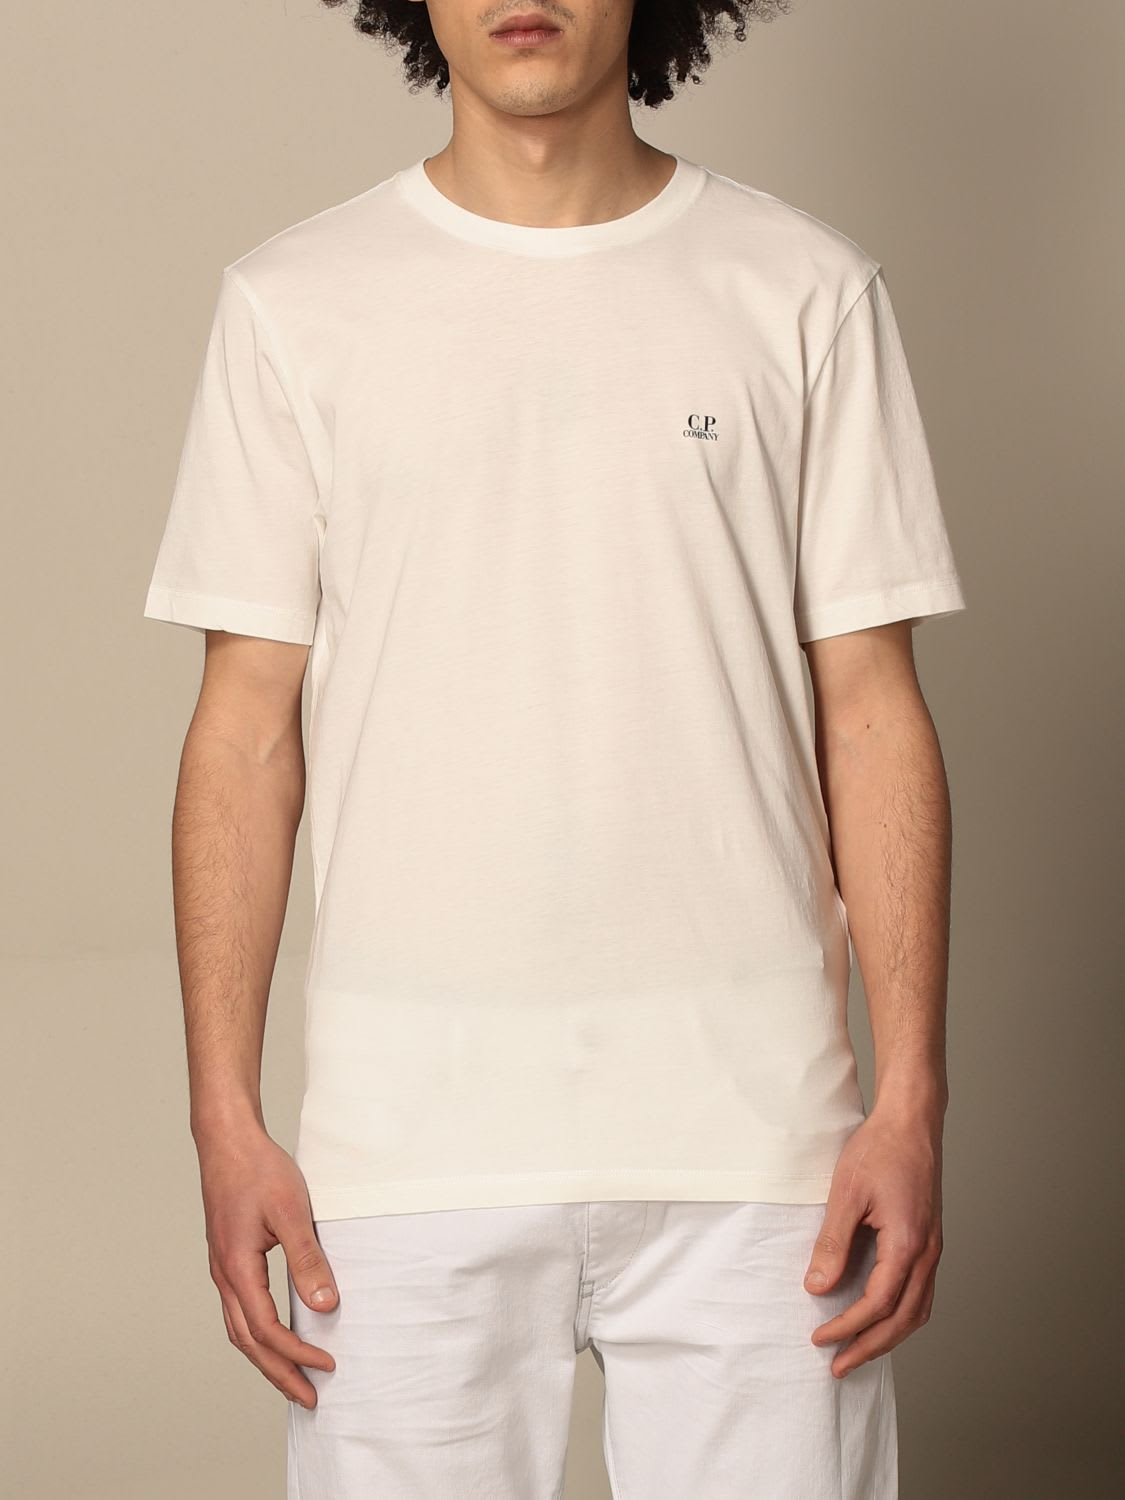 C.p. Company Cottons C.P. COMPANY T-SHIRT C.P. T-SHIRT COMPANY IN COTTON WITH PRINT